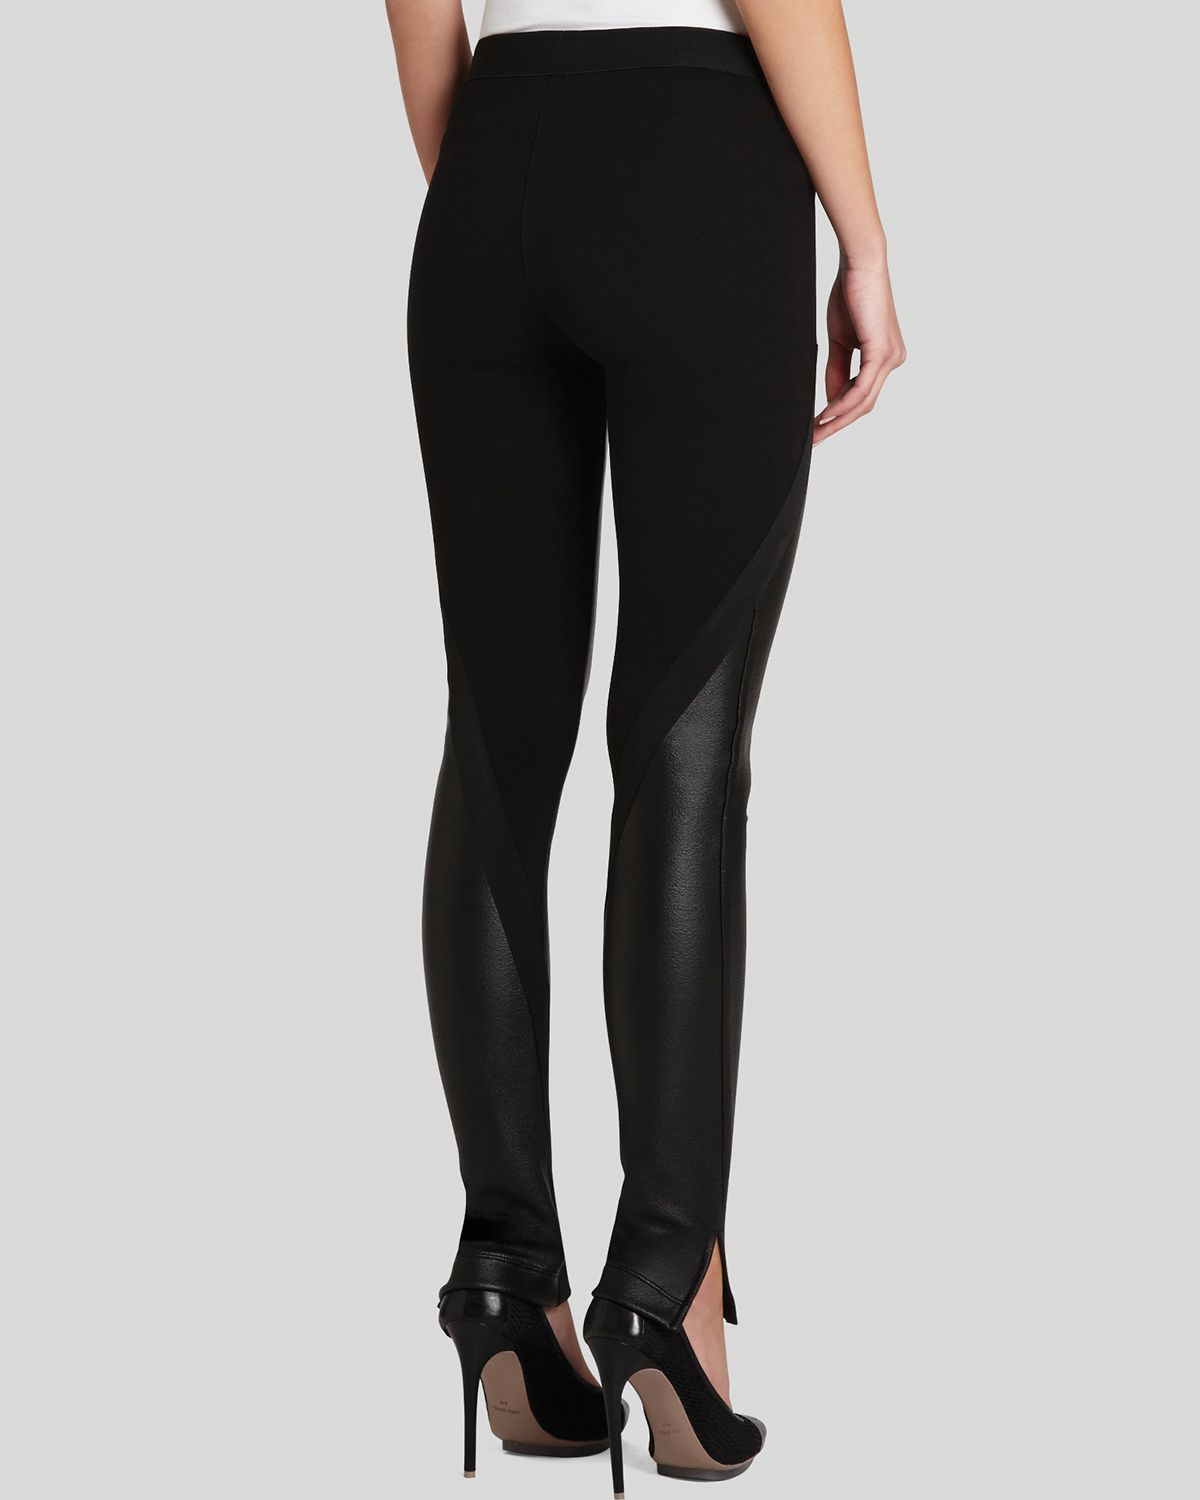 a183b39e65fa39 BCBGMAXAZRIA Bcbg Max Azria Leggings Slade Faux Leather in Black - Lyst